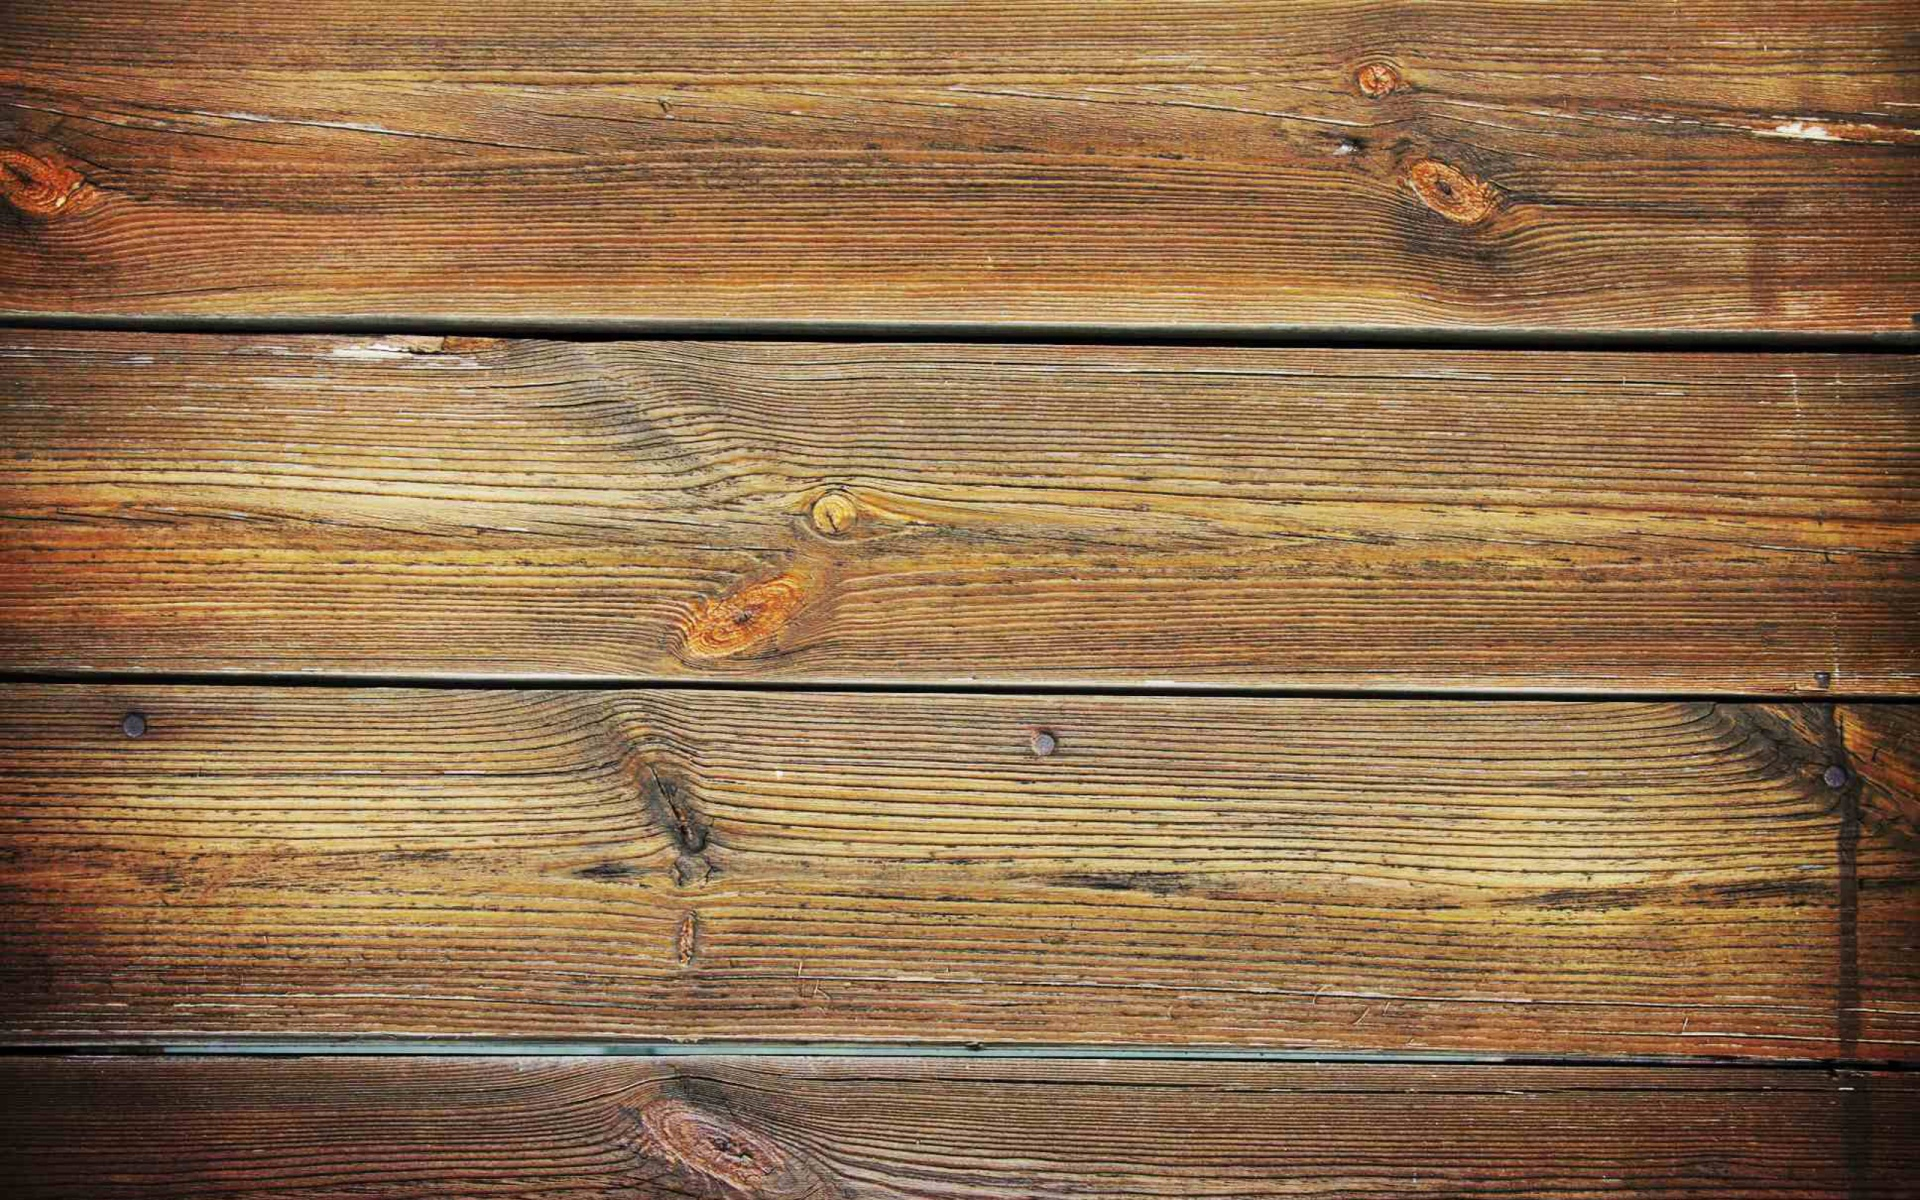 Displaying 15 Images For   Wood Wall 1920x1200